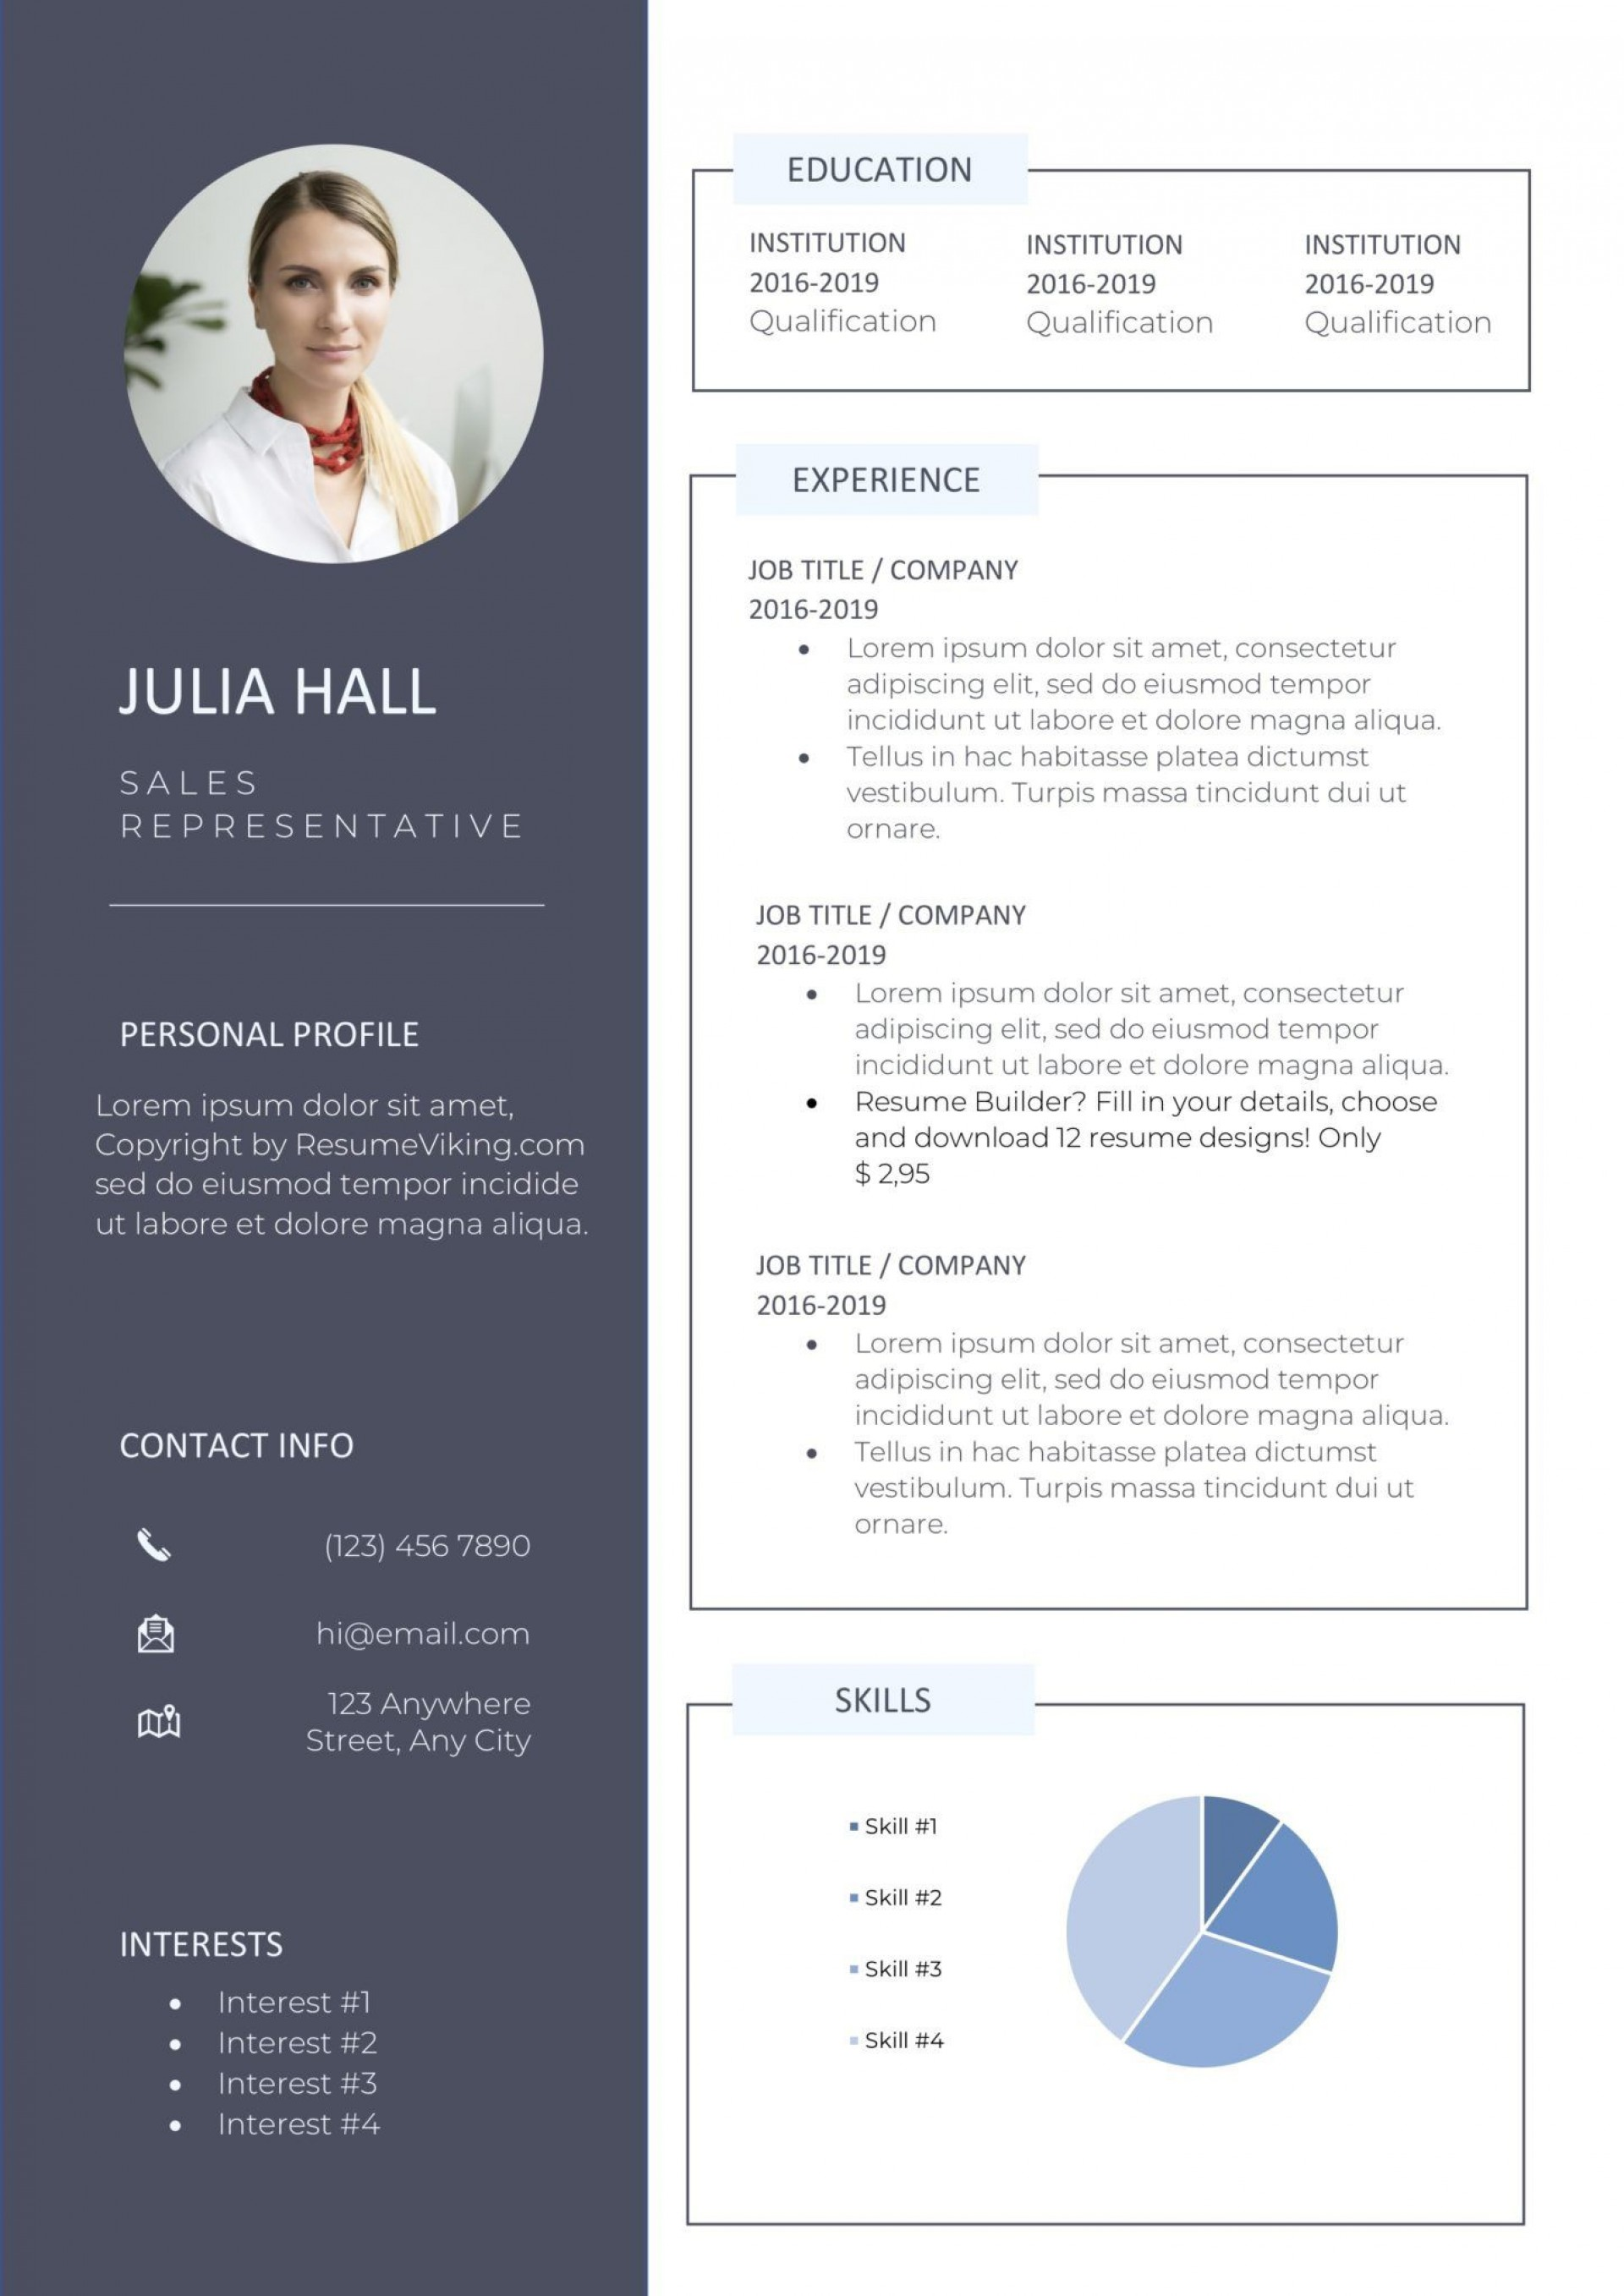 012 Frightening Resume Template Free Word Download Image  Cv With Photo Malaysia Australia1920